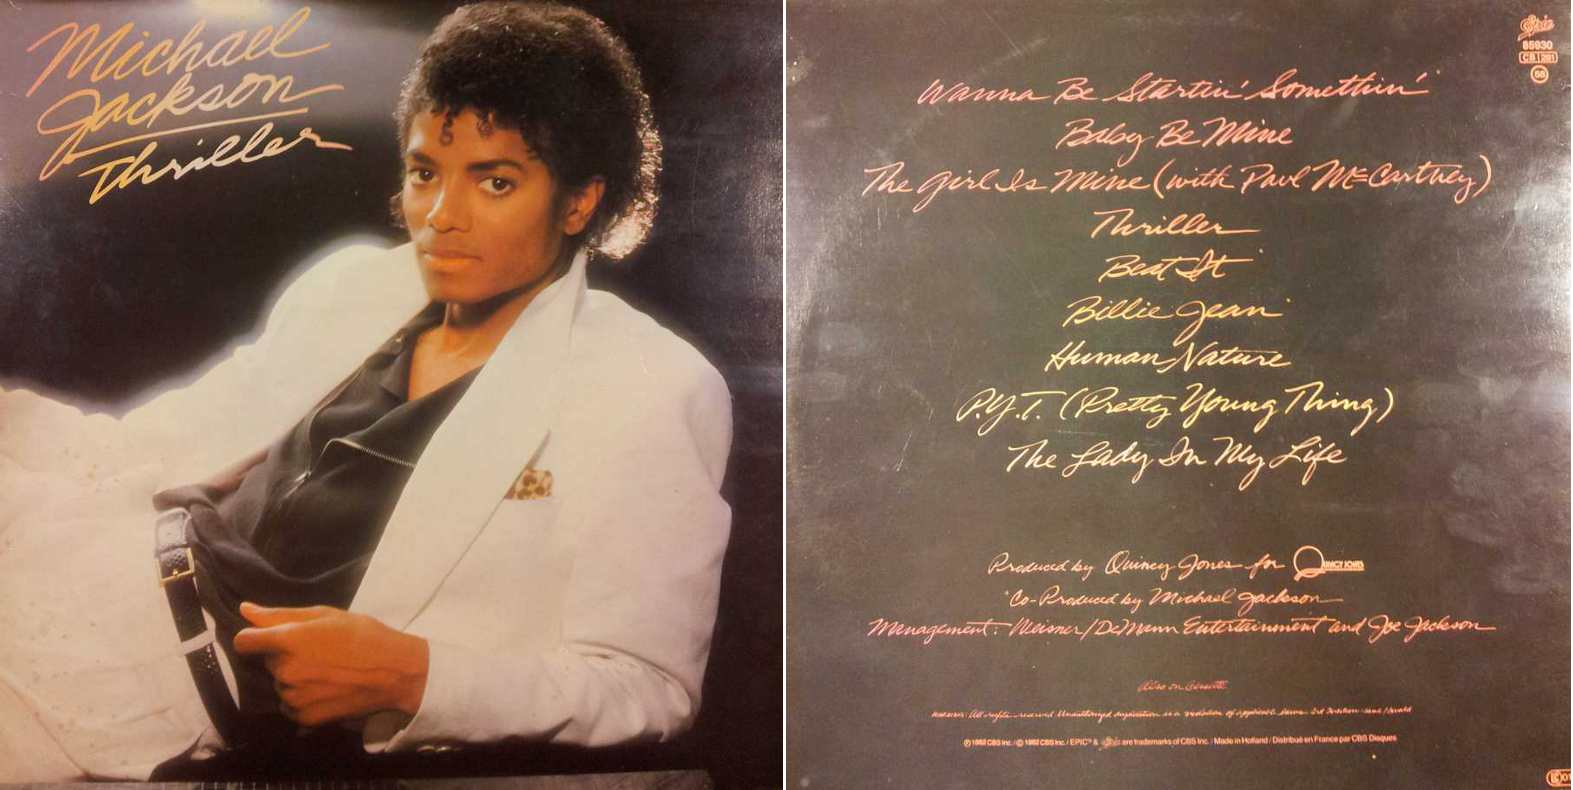 MICHAEL JACKSON - Off The Wall (LP/Vinile 33 giri) USATO BUONO